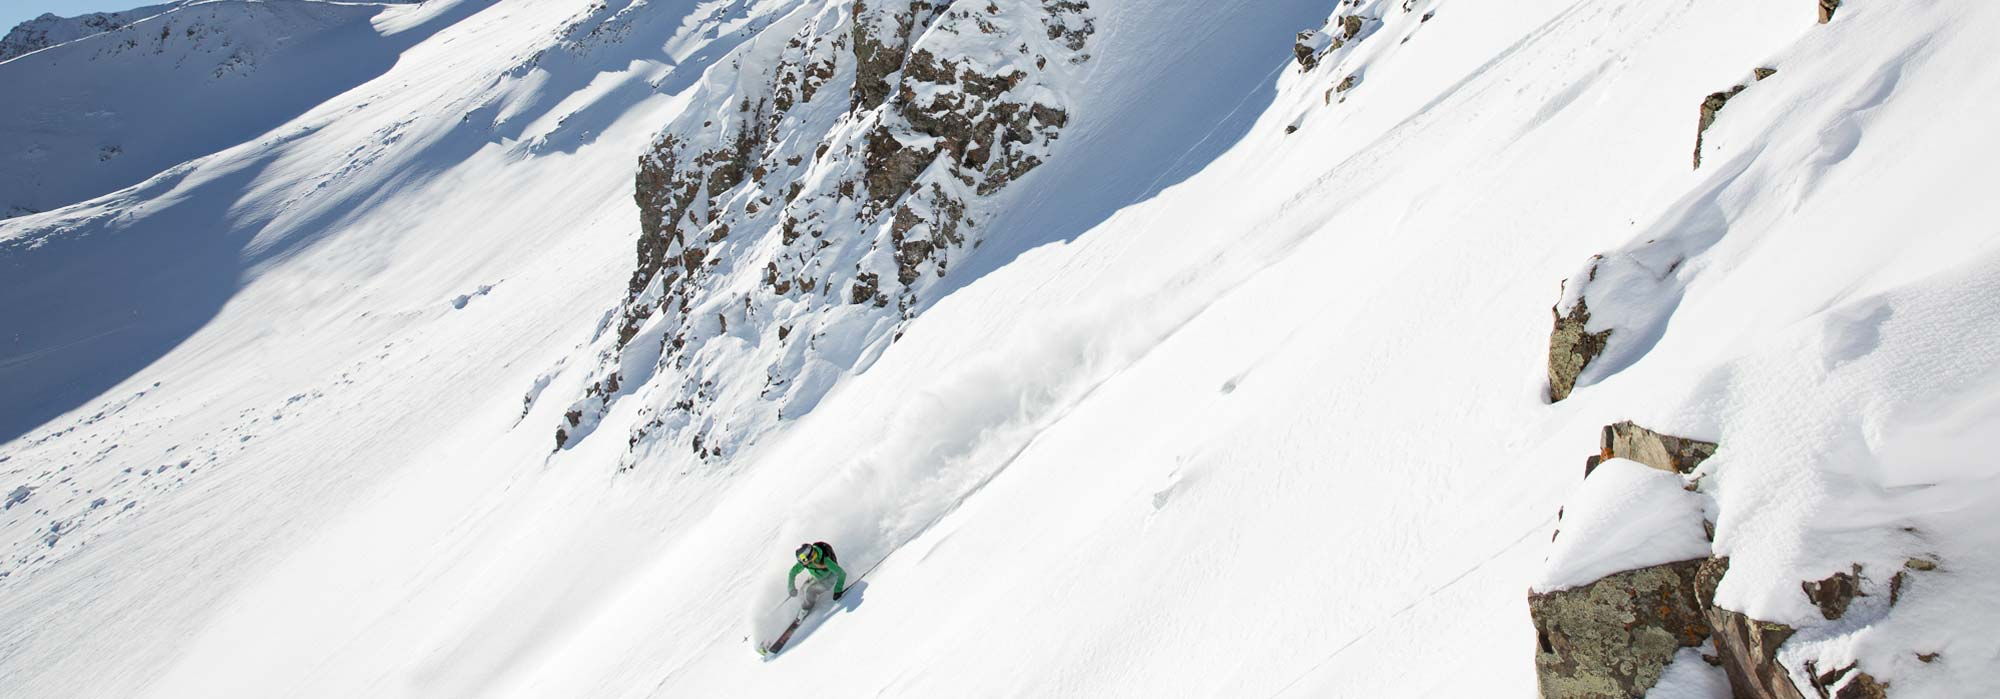 New Avalanche Certification And Training Program Offered For Pros